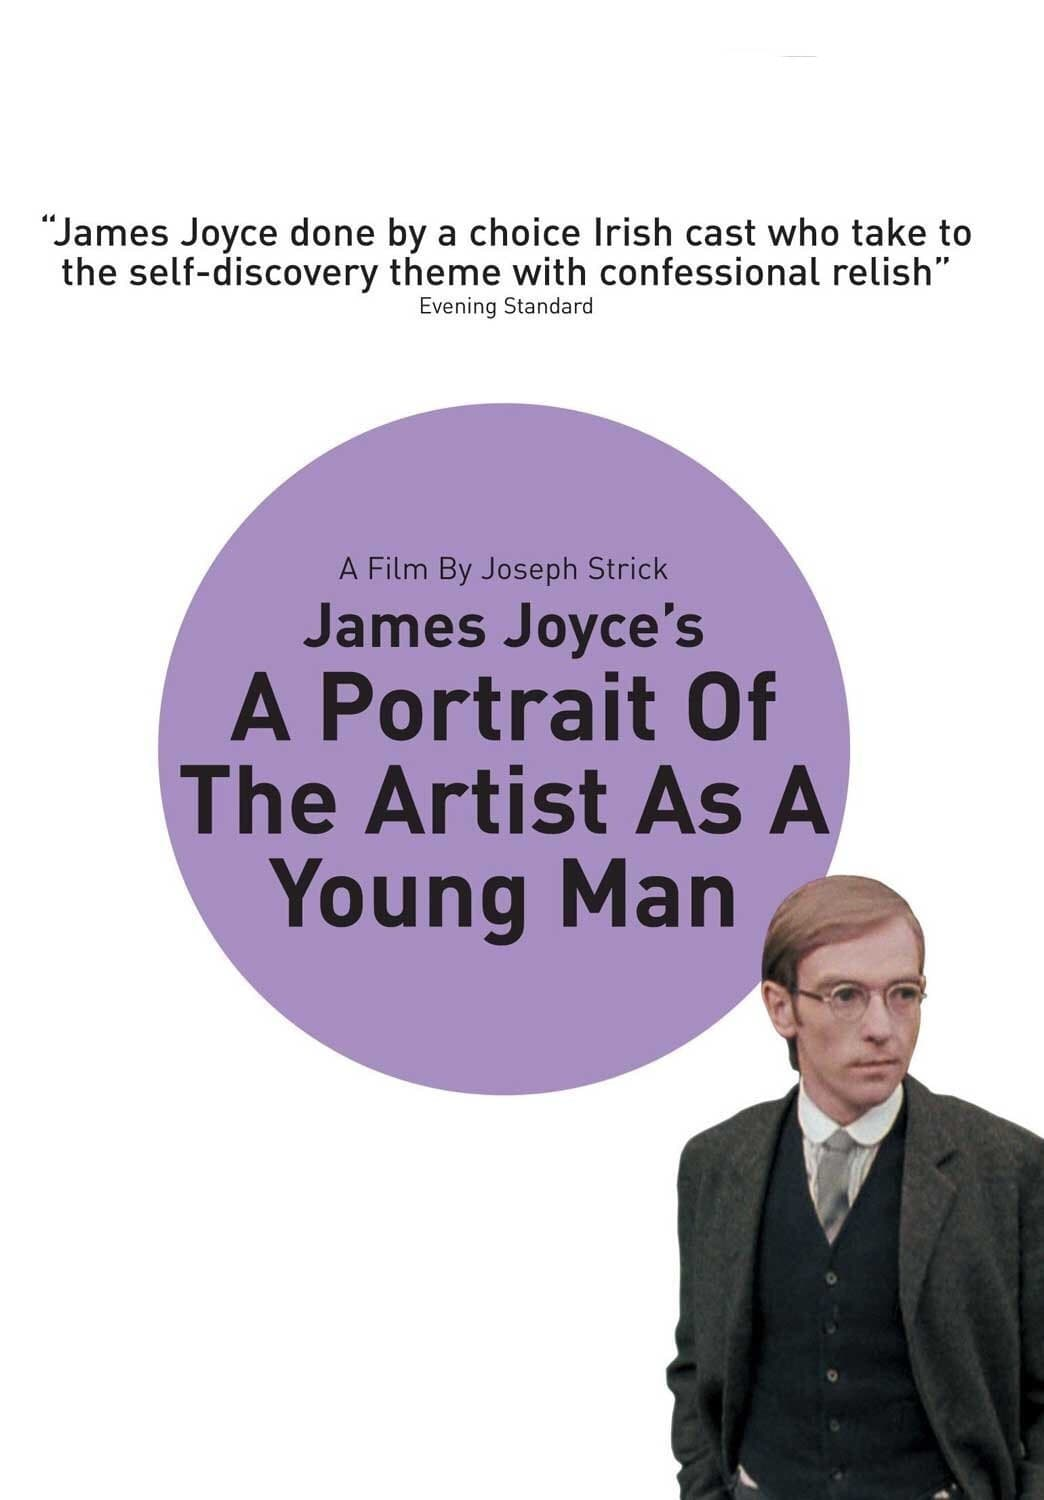 an analysis of a portrait of stephen dedalus as a young man Stephen dedalus: stephen dedalus, fictional character, the protagonist of james joyce's autobiographical novel a portrait of the artist as a young man (1916) and a central character in his novel ulysses (1922) joyce gave his hero the surname dedalus after the mythic craftsman daedalus, who devised the labyrinth.